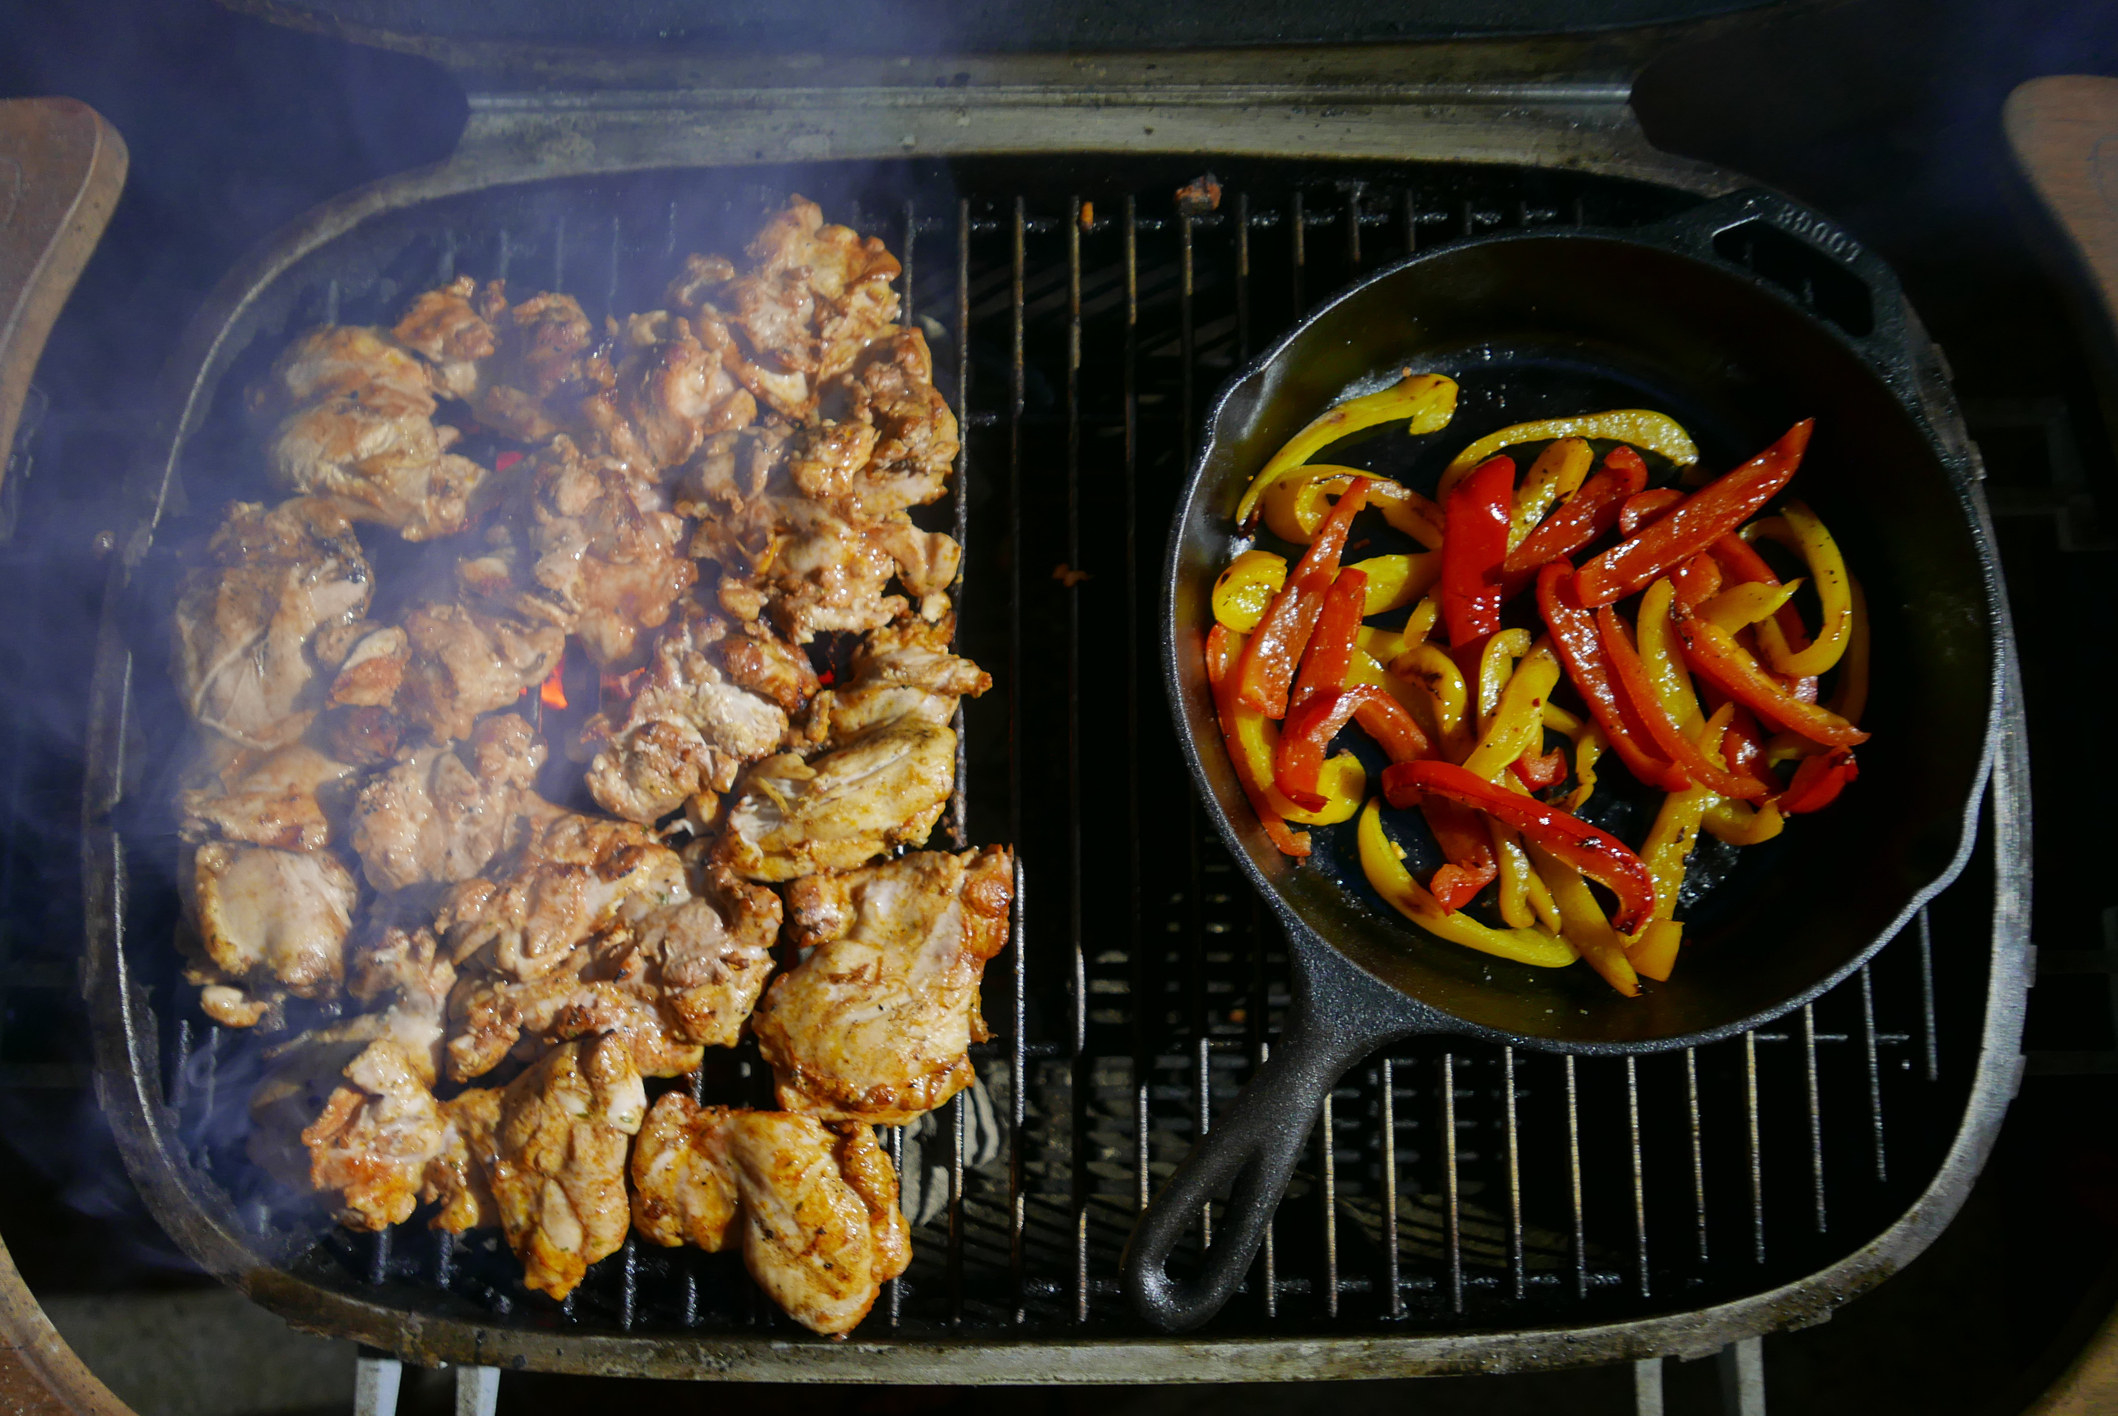 Chicken a cast iron skillet filled with bell peppers going on a grill.